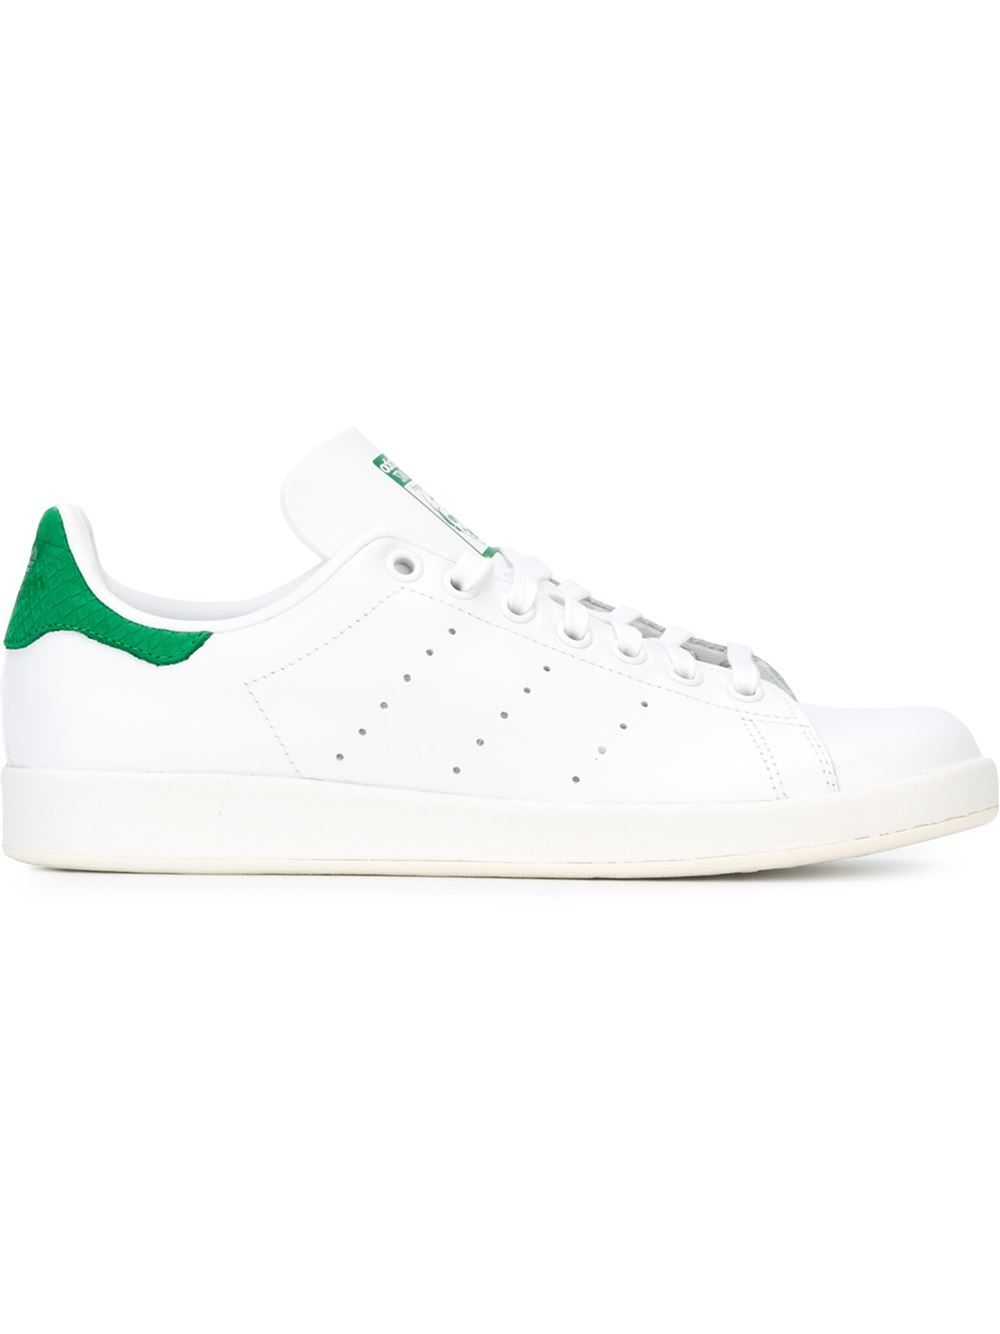 adidas 39 stan smith 39 sneakers in white lyst. Black Bedroom Furniture Sets. Home Design Ideas